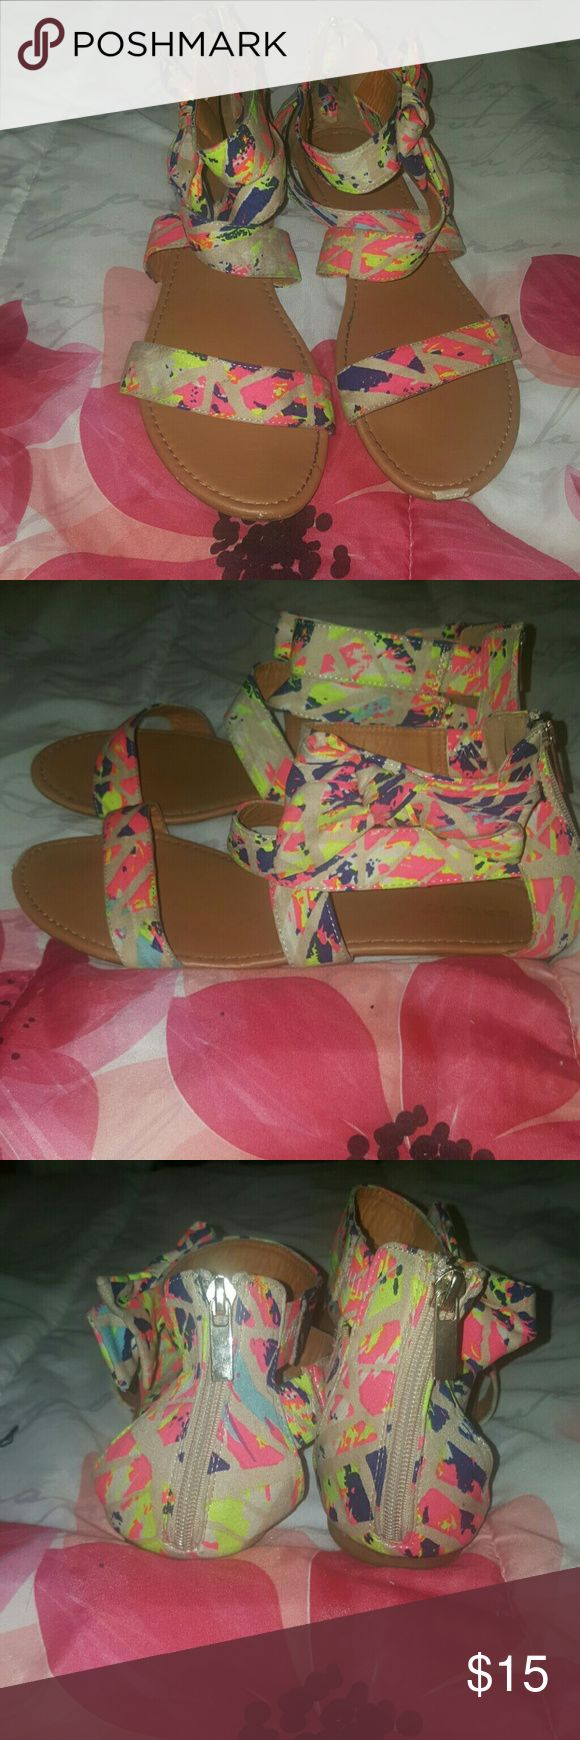 Multi Color Splash Paint SANDALS SIZE 11 Splash paint print multi color sandals clean in good condition. Just needs wipe down on cloth print with babywipes or baking soda and water if dirty. Comfortable and stylish ankle sandal with bow detail.  defect scratch on toe of heel not noticeable when worn bamboo  Shoes Sandals